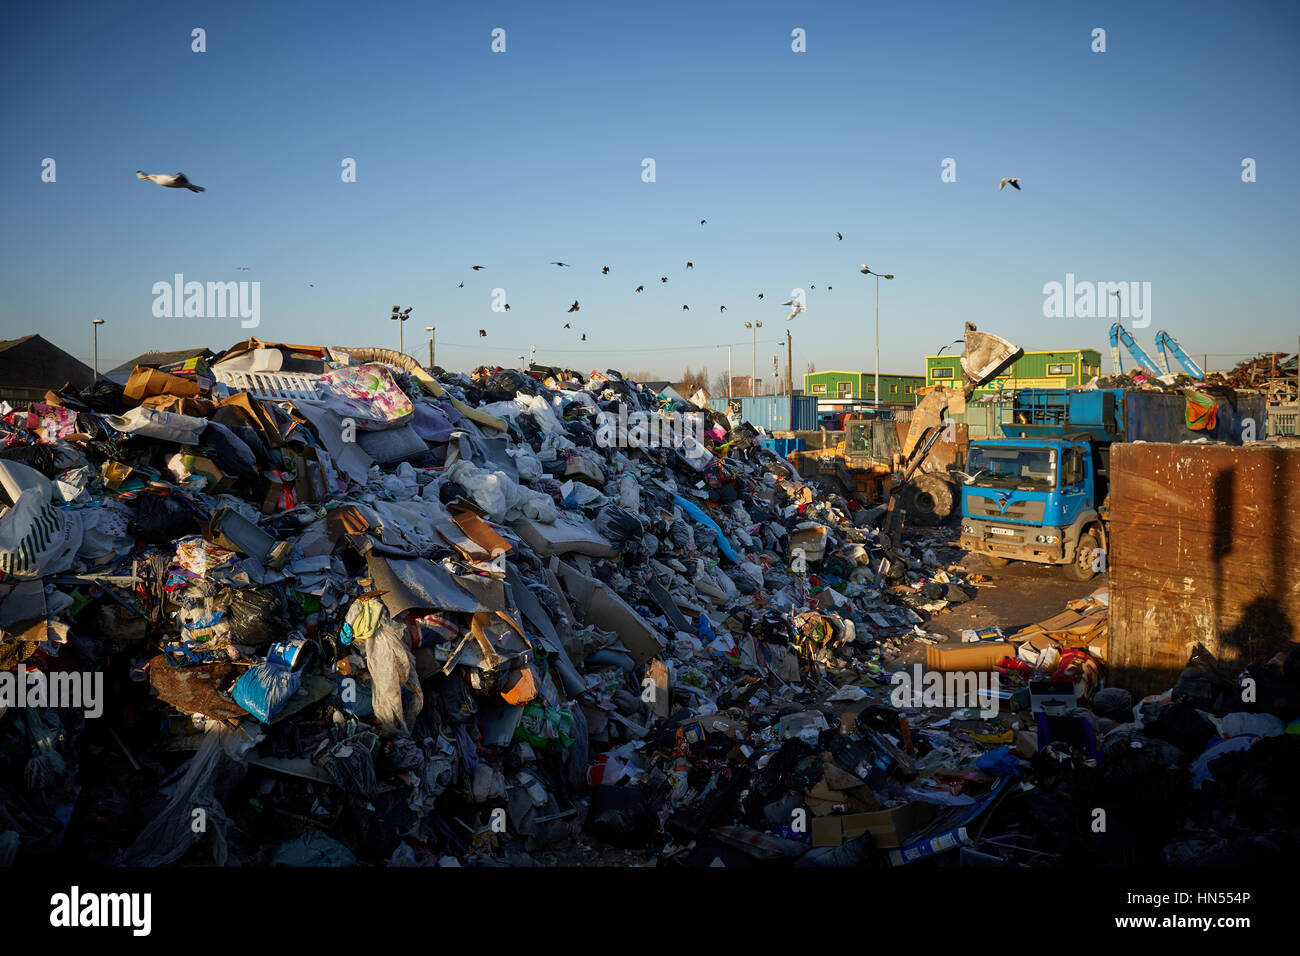 A large pile of rubbish mound at Mount Road Council run Landfill tip recycling dump in Gorton, Manchester, England, - Stock Image